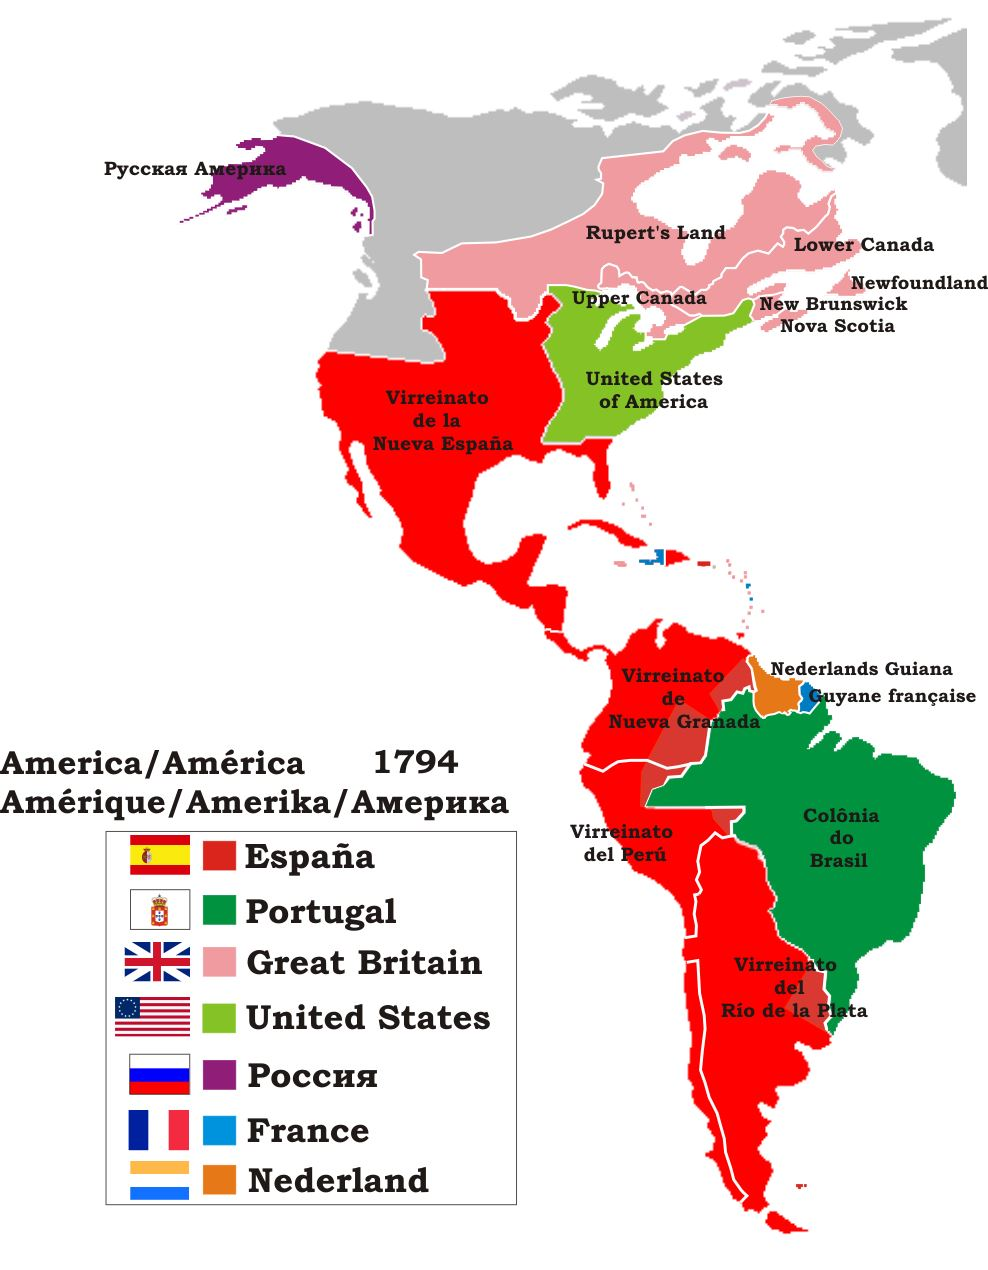 european expansion in the americas Essays - largest database of quality sample essays and research papers on european expansion in the americas.